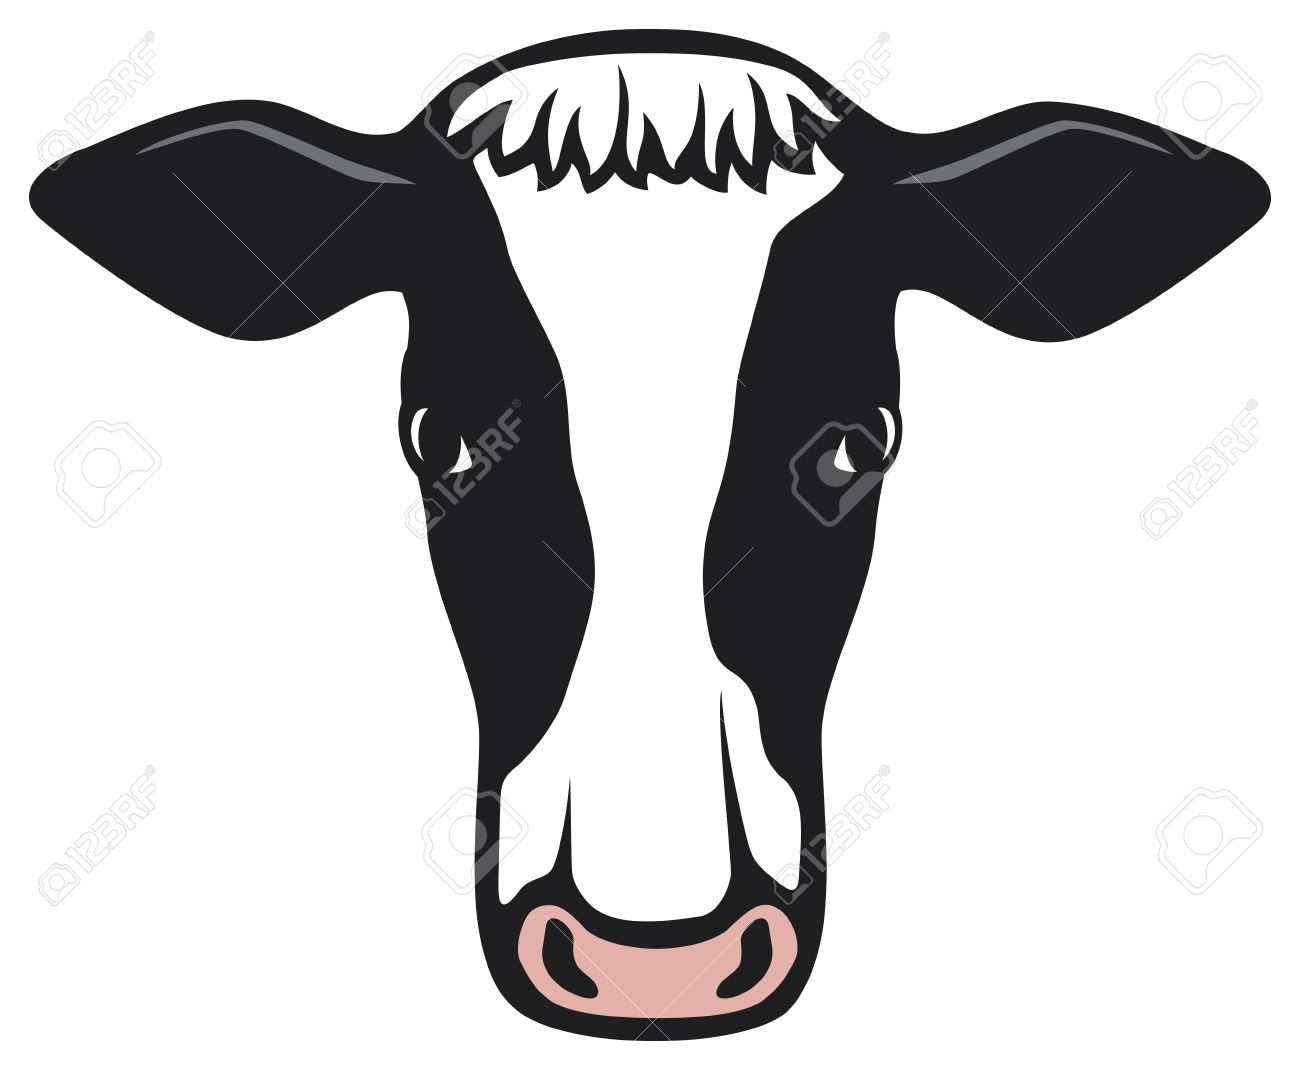 cow head royalty free cliparts vectors and stock illustration rh 123rf com cow face clip art vintage adorable cow face clipart